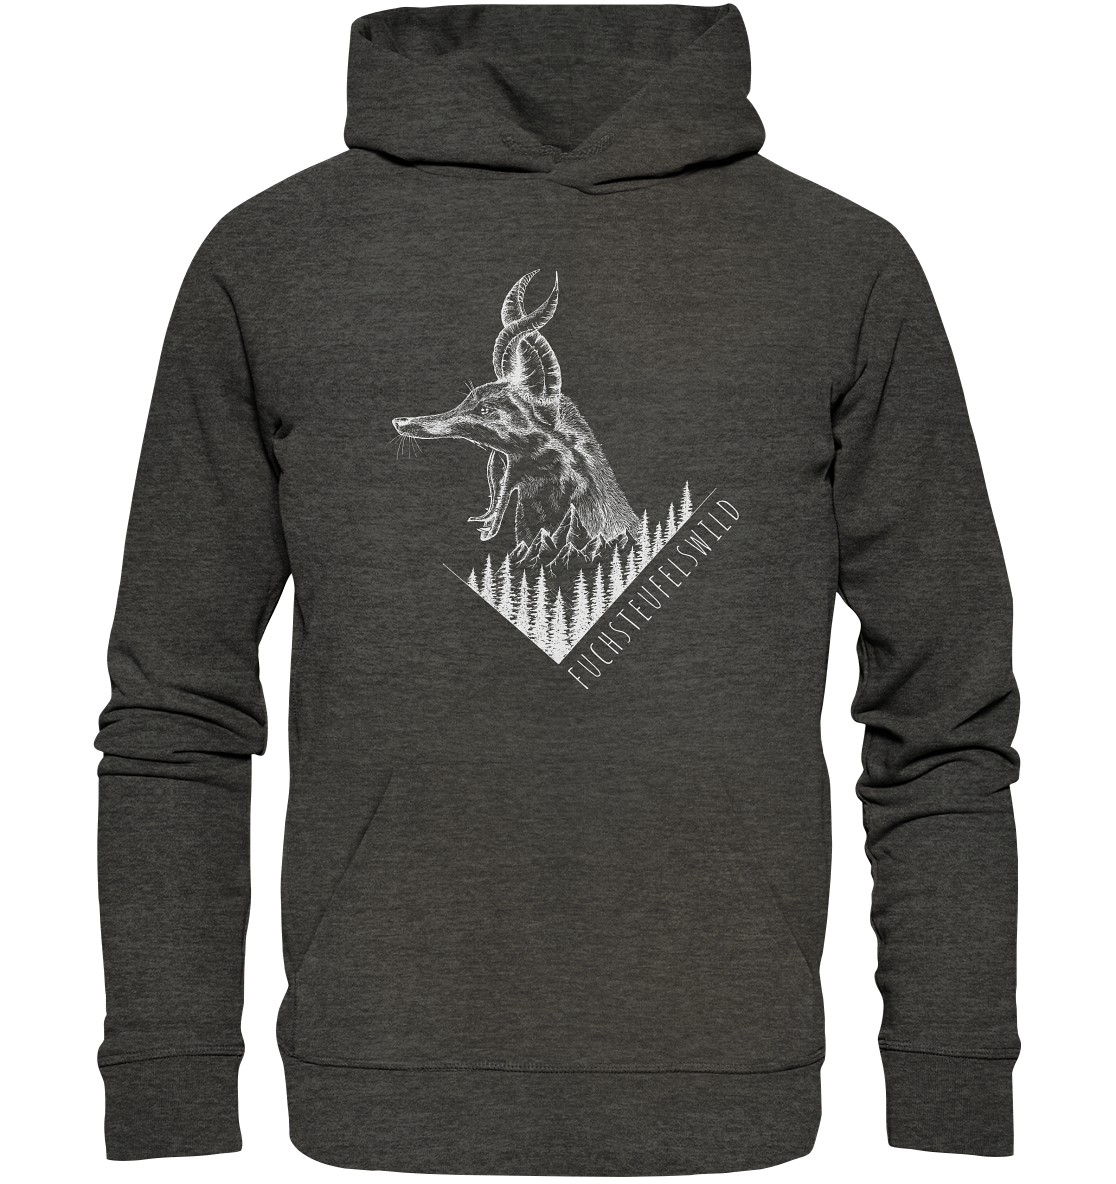 front-organic-hoodie-252625-1116x-3.png